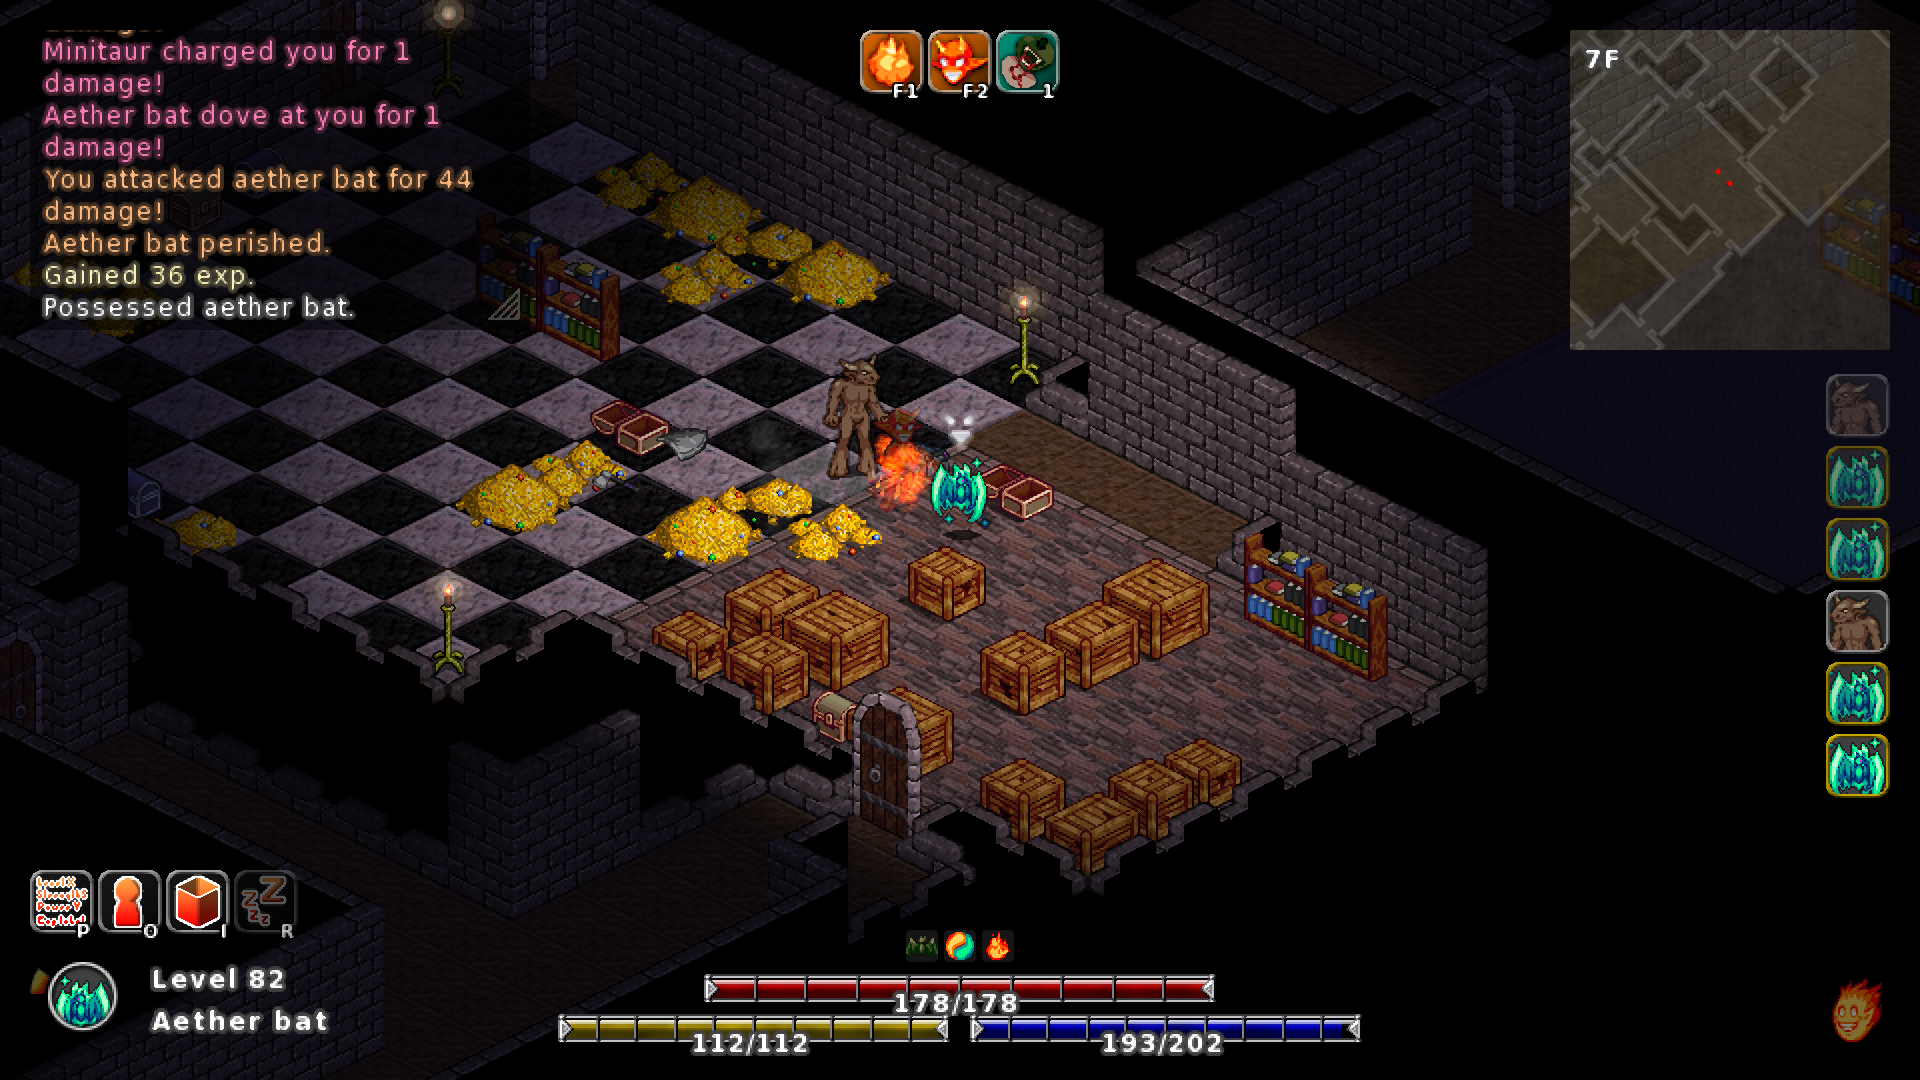 A humanoid creature with horns and fur standing in a underground dungeon room with piles of gold, wooden crates and bookshelves.